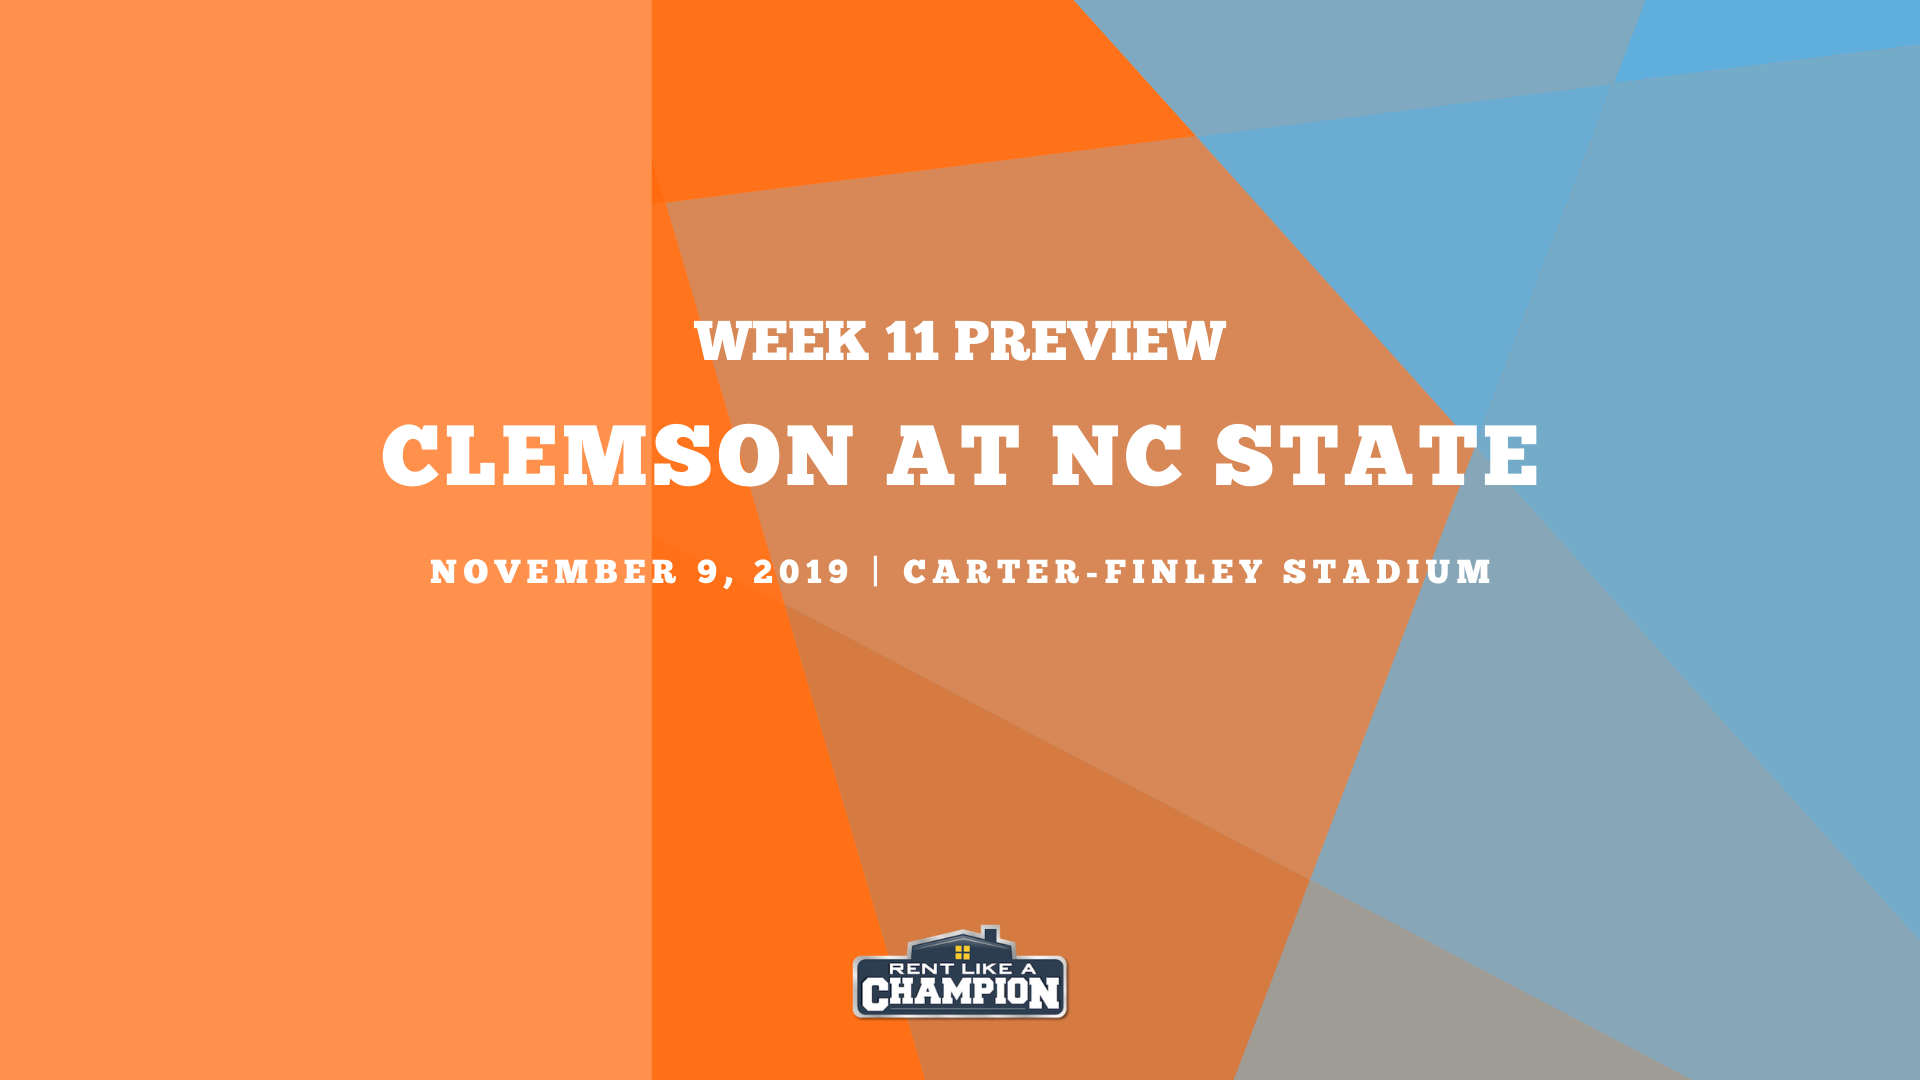 Clemson at NC State: Preview, keys to the game, and predictions